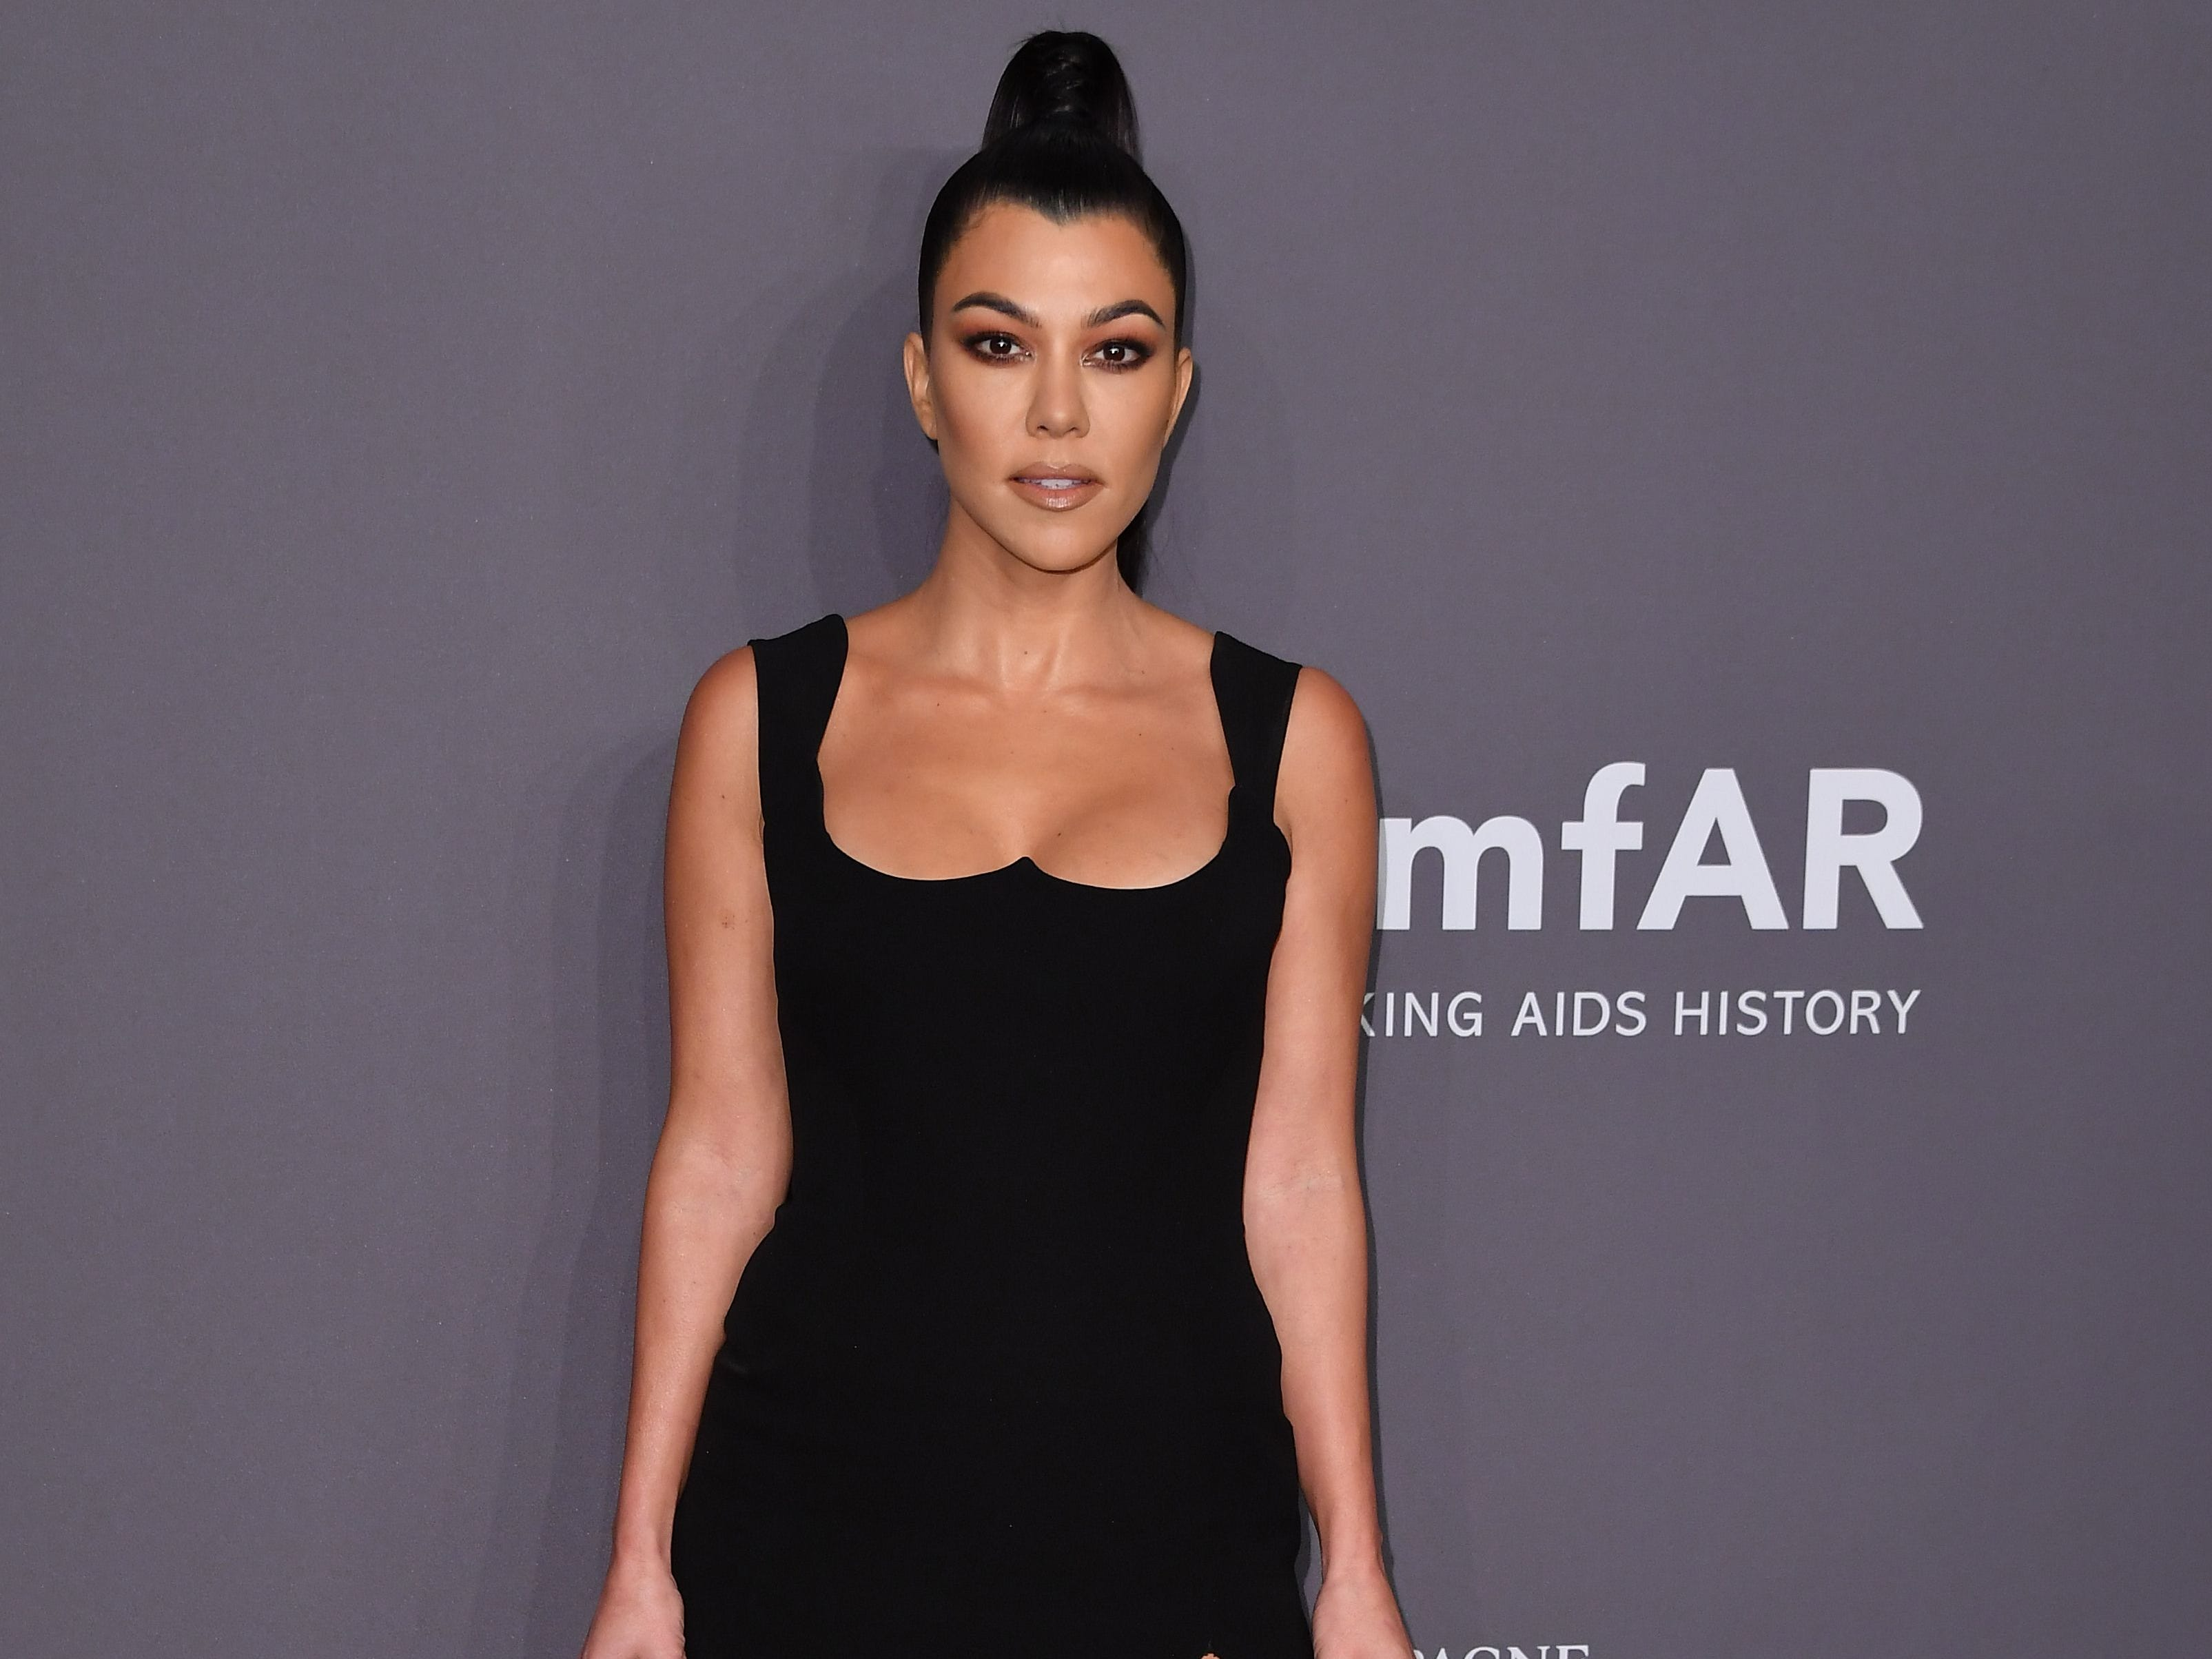 US media personality Kourtney Kardashian arrives to attend the amfAR Gala New York at Cipriani Wall Street in New York City on February 6, 2019. (Photo by ANGELA WEISS / AFP)ANGELA WEISS/AFP/Getty Images ORIG FILE ID: AFP_1D46SC